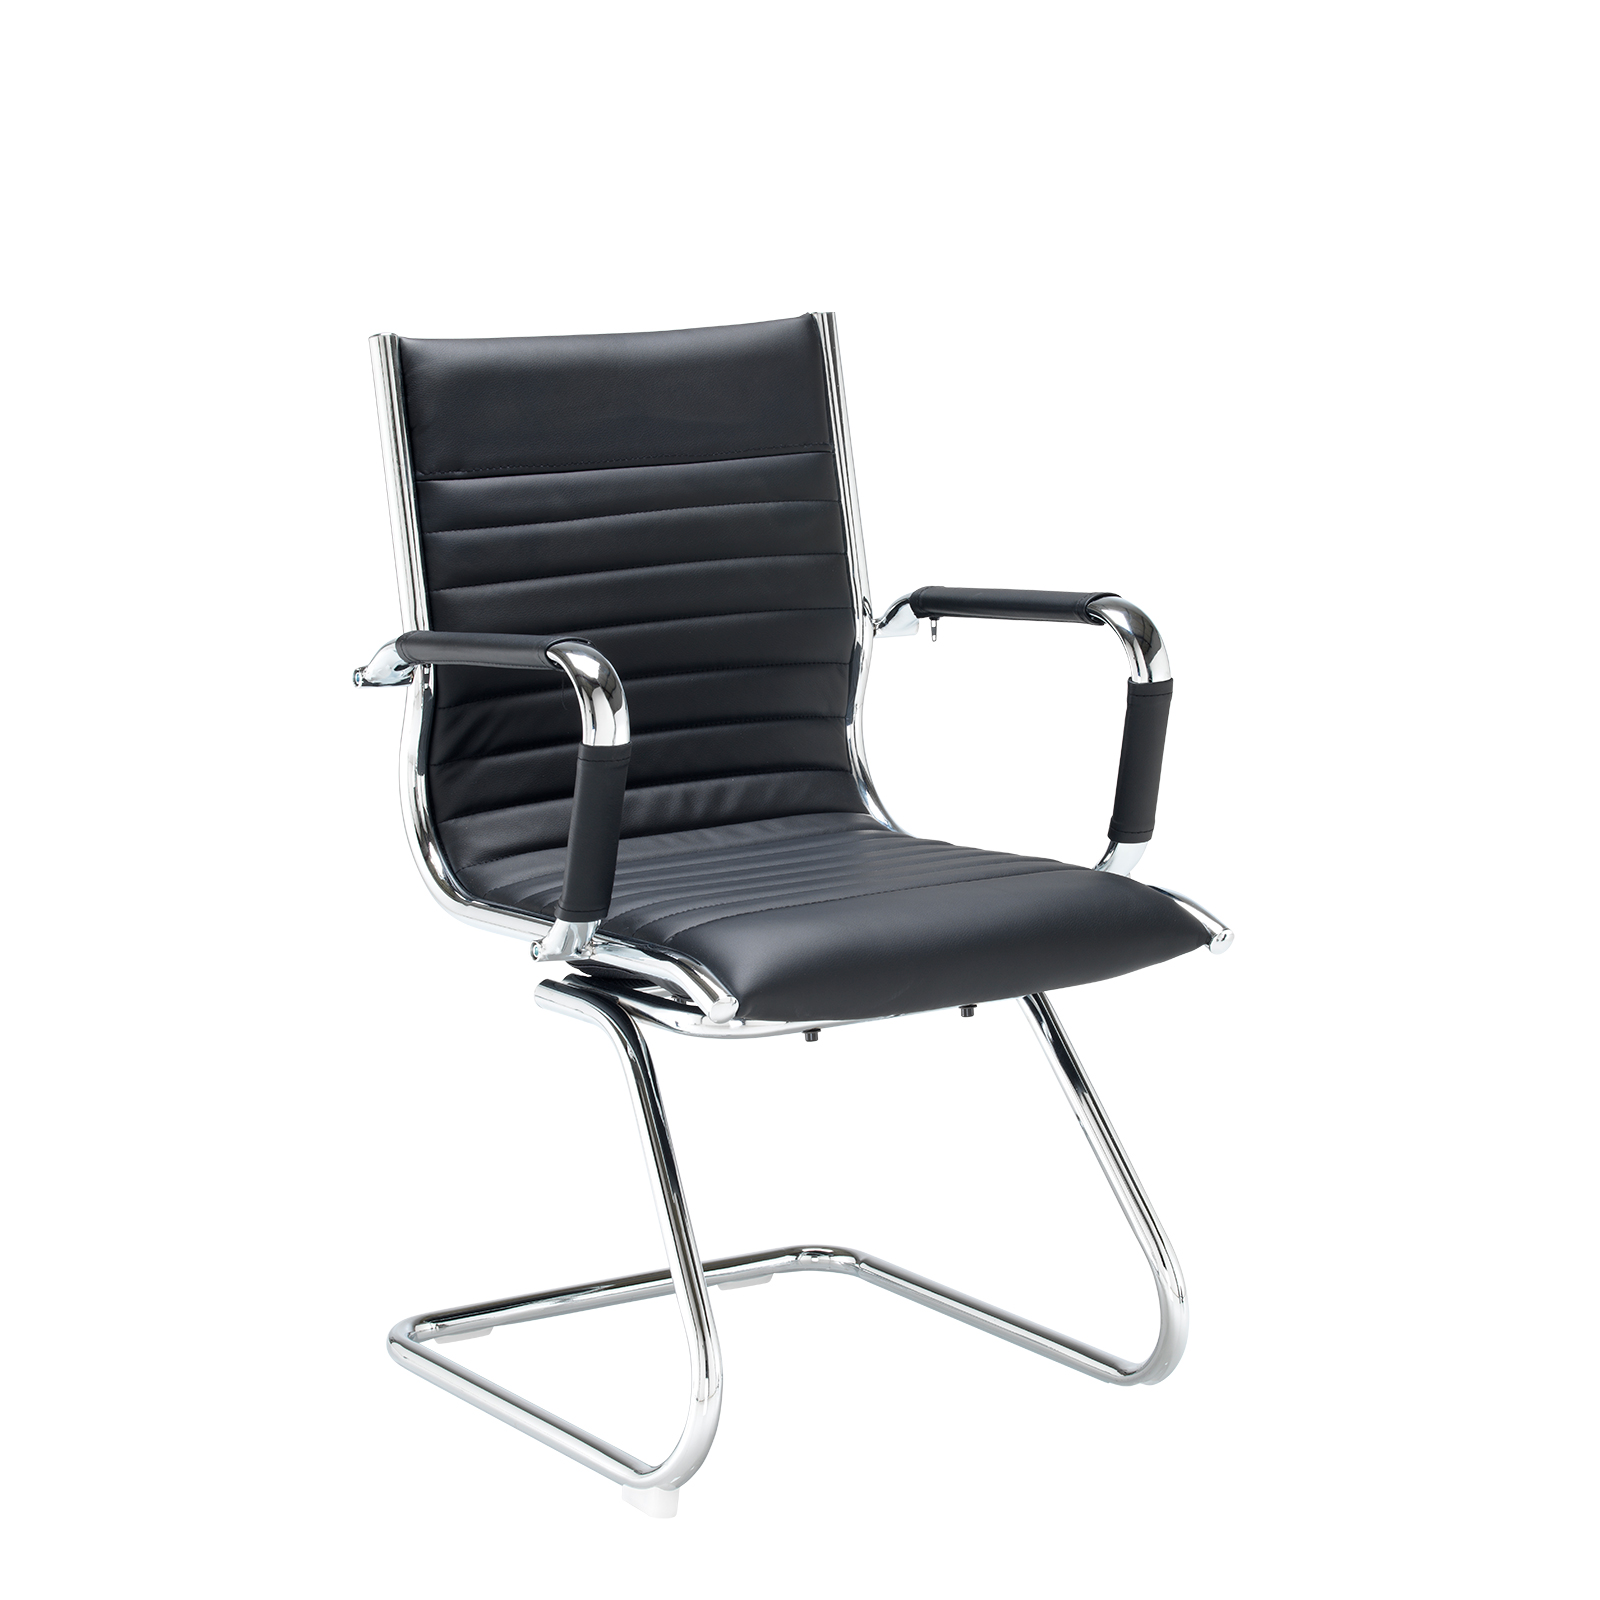 Boardroom / Meeting Bari executive visitors chair - black faux leather